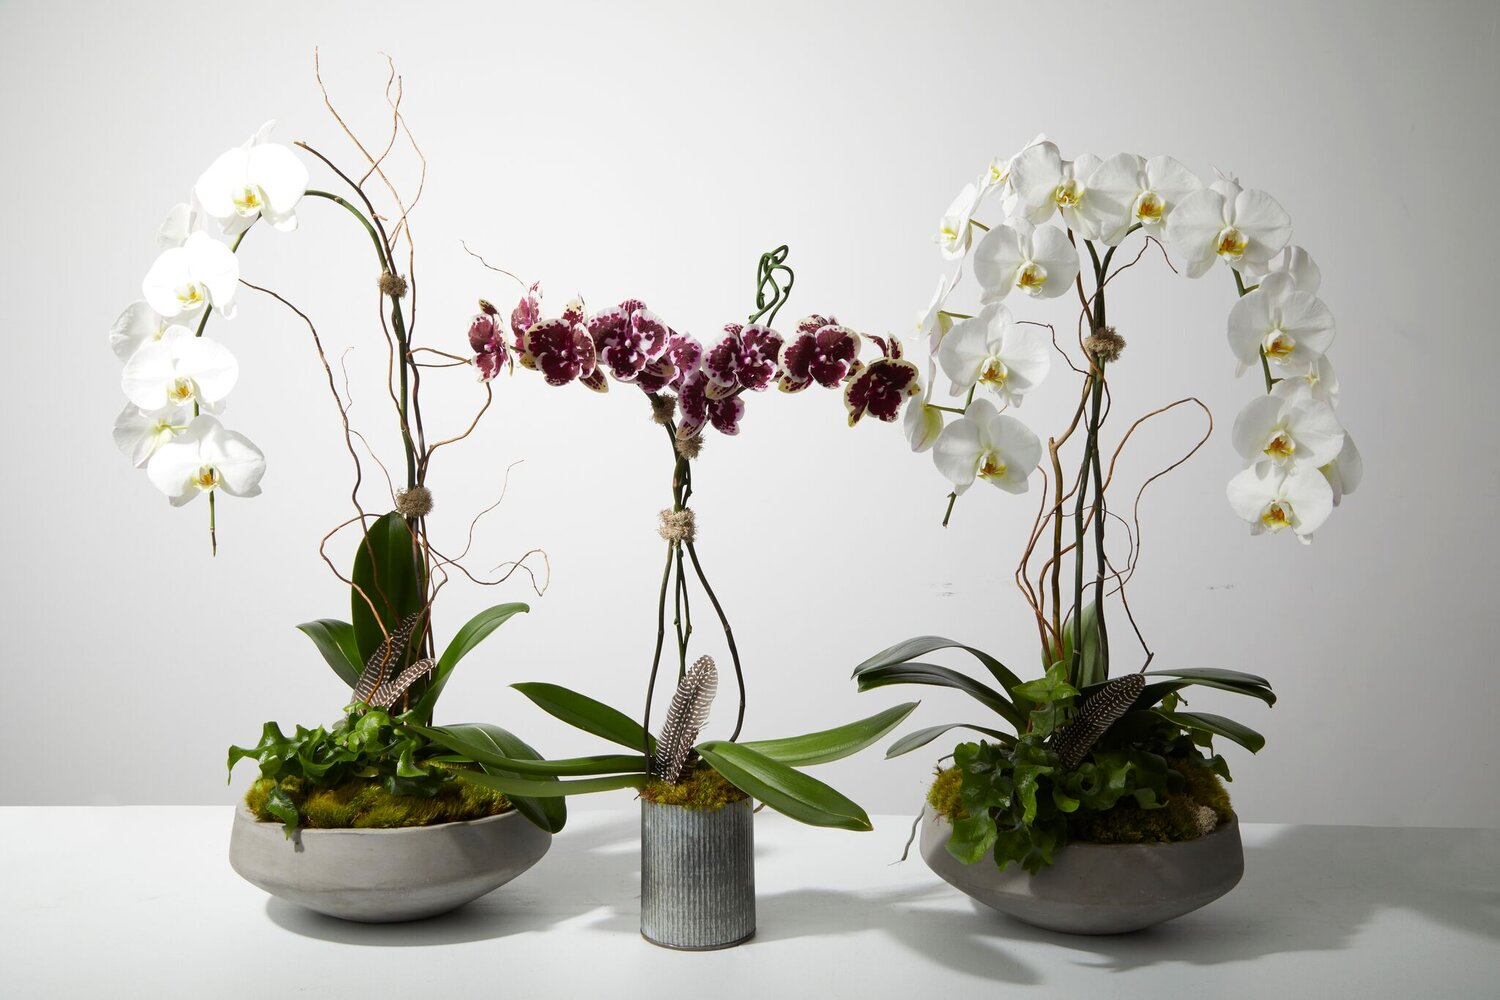 OrchidsLight: Likes light but not direct sunlight.Water: Every 2 weeks (2-3 shot glasses worth of water). -